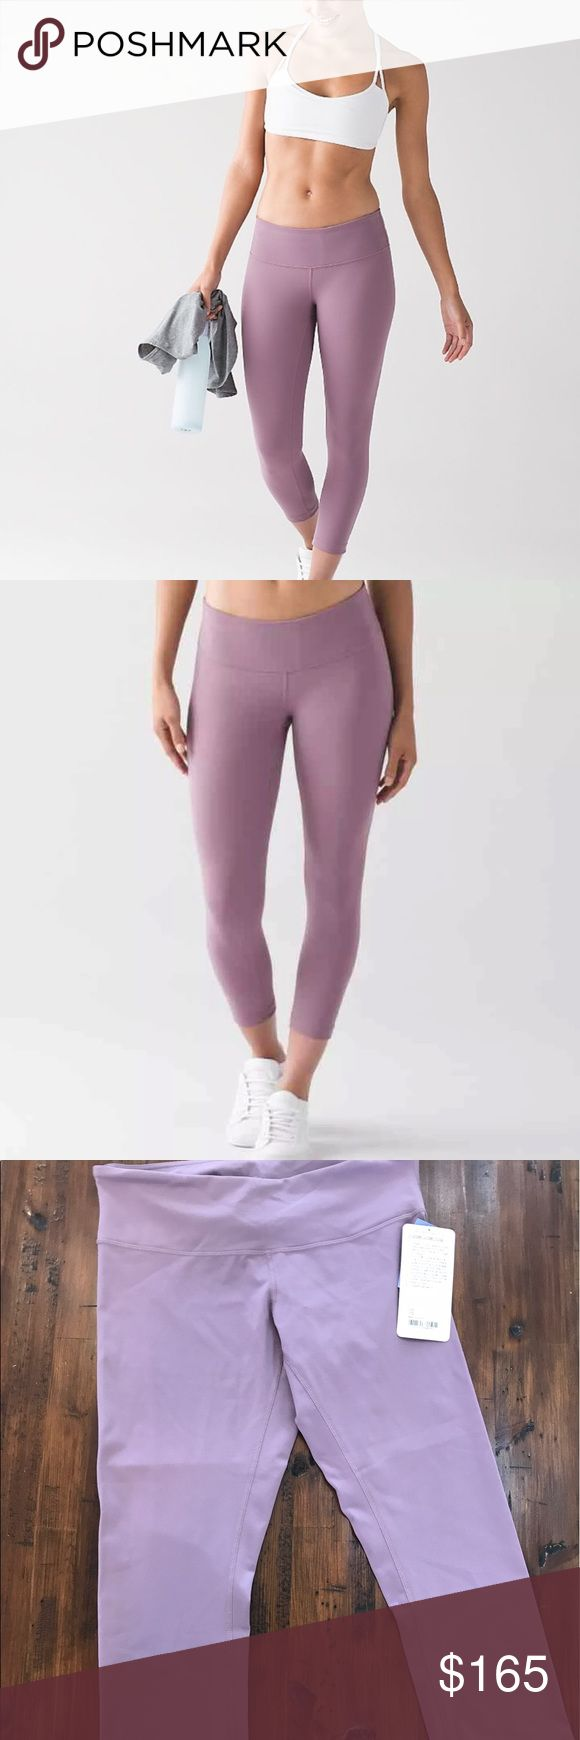 🍋Lululemon Dusty Mauve Crops Lululemon NWT Dusty Mauve Wunder Under Crops. Size 10. Rare and hard to find color. Color looks the most like the first 2 stock photos. No trades. No offers please.   PRICE IS FIRM!  Thanks! lululemon athletica Pants Capris